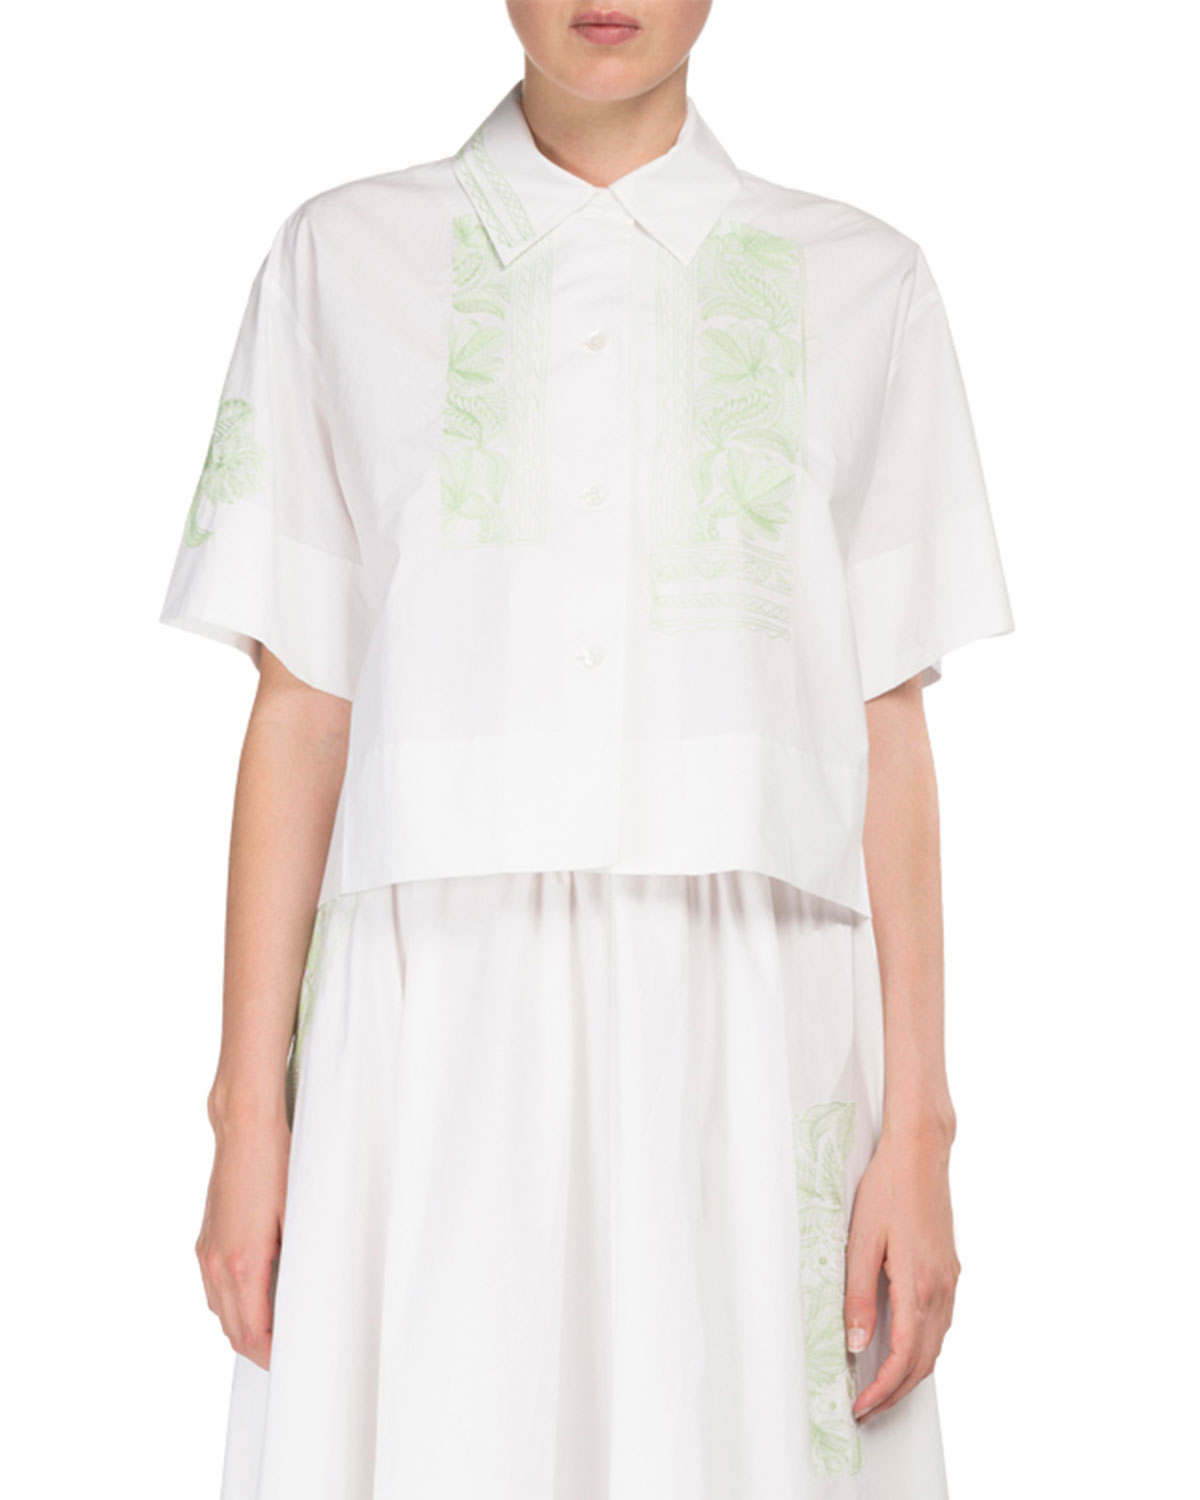 702b76c575cf Acne Studios Hella Full Cotton Skirt w  Floral Embroidery and ...